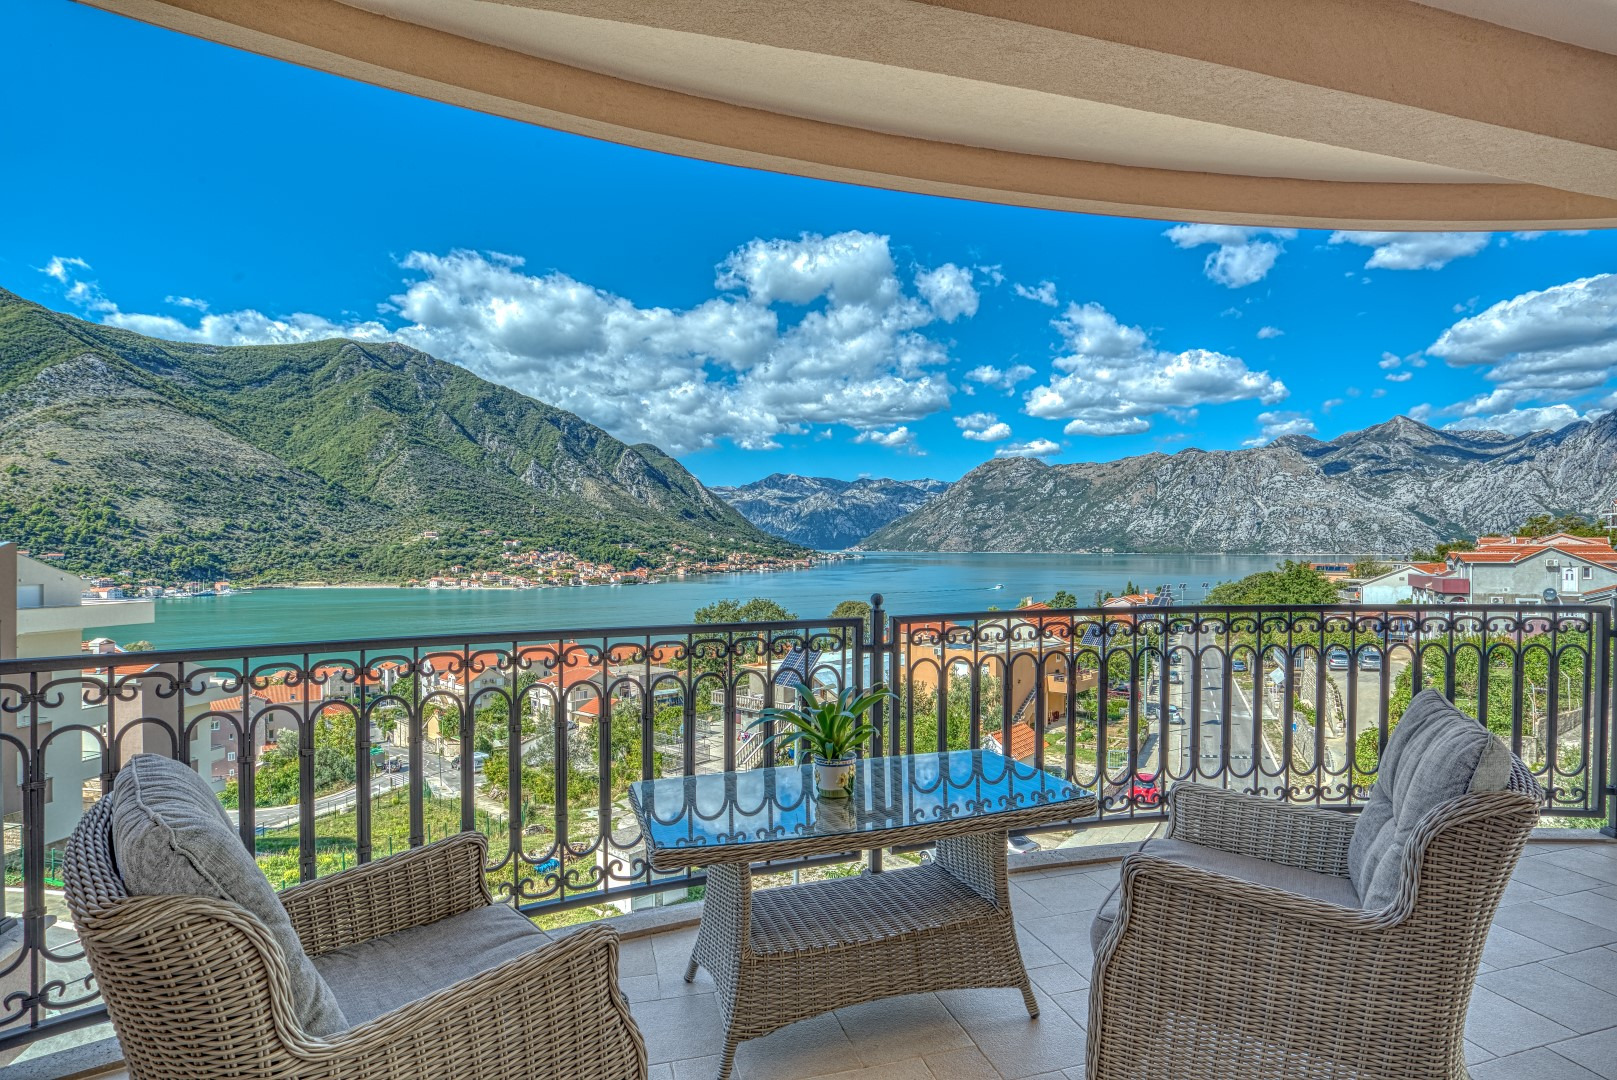 Kotor, Dobrota – villa with apartments and a residential building under construction